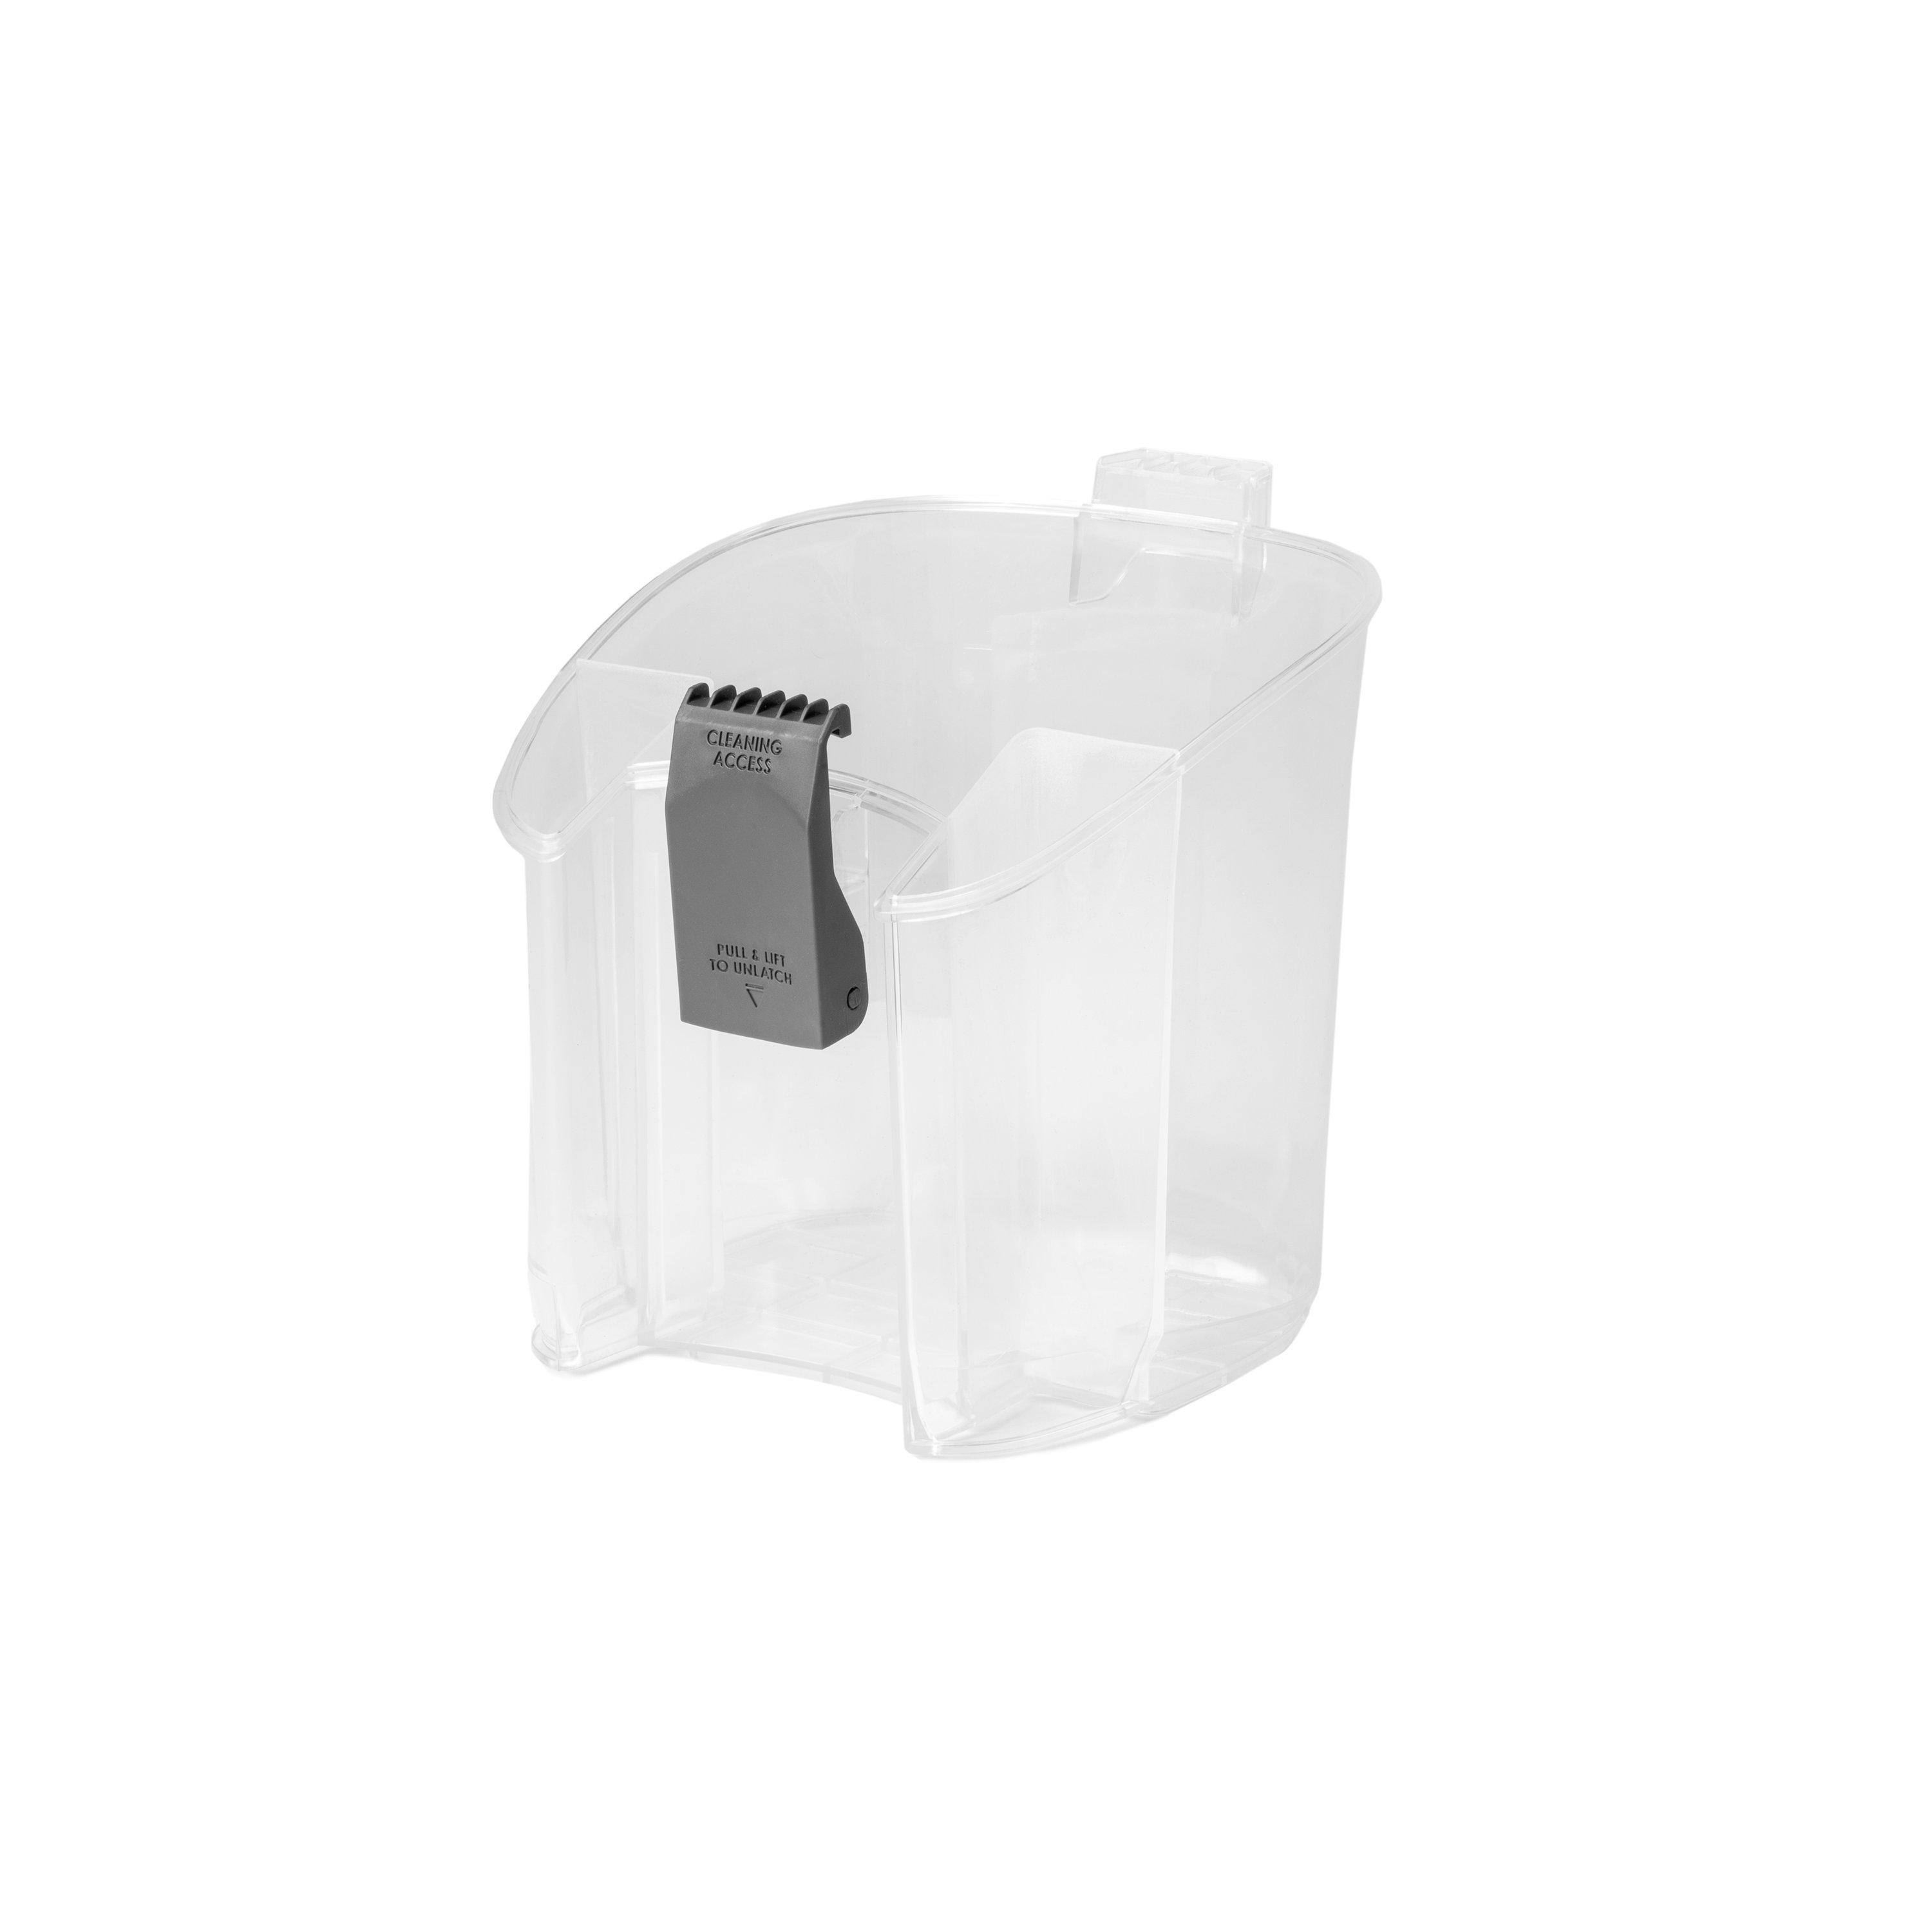 Dirty Water Tank for Dual Power Max Pet2